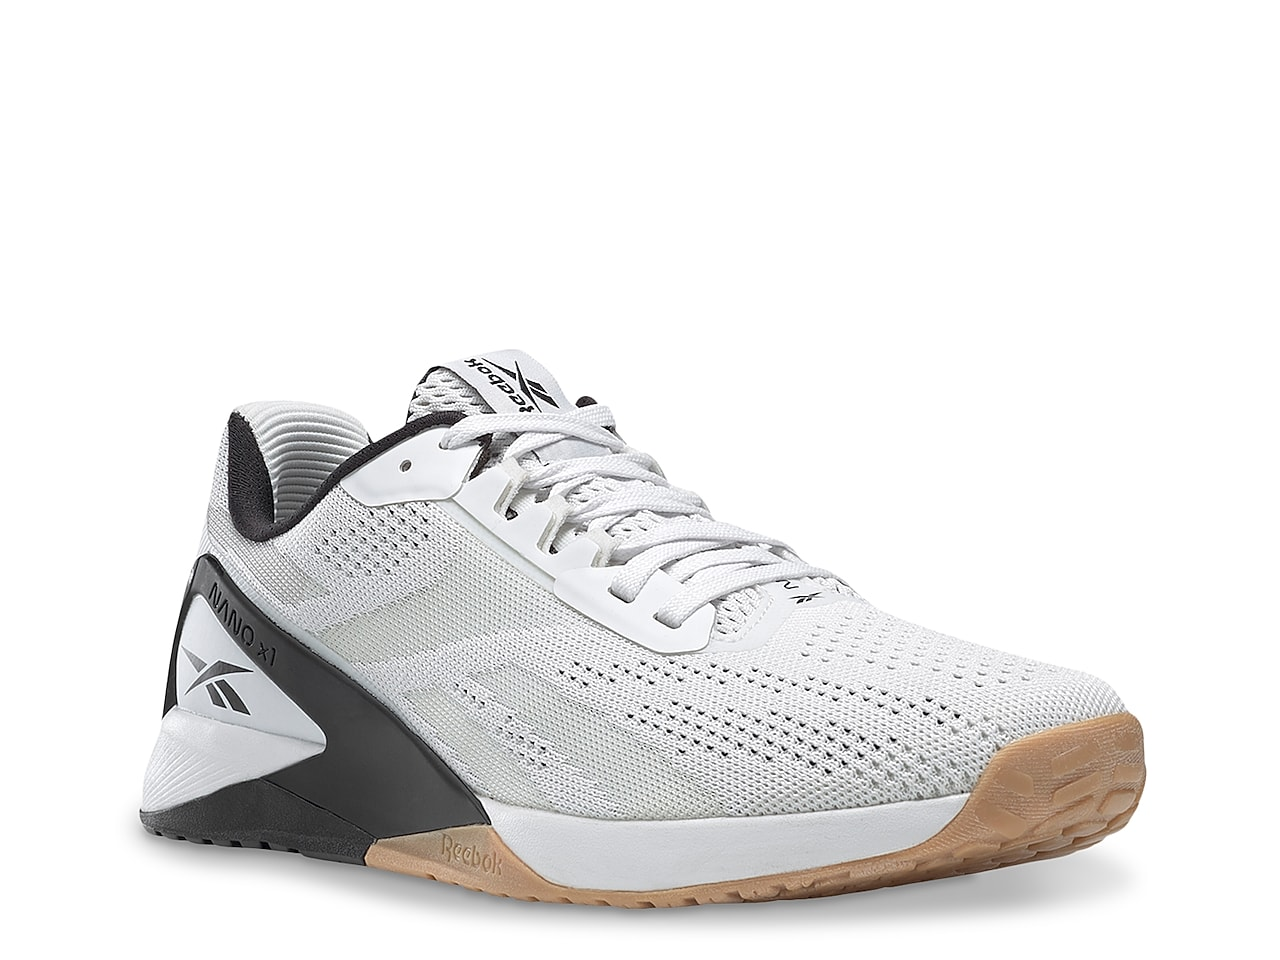 Nano X1 Training Sneaker - Men's